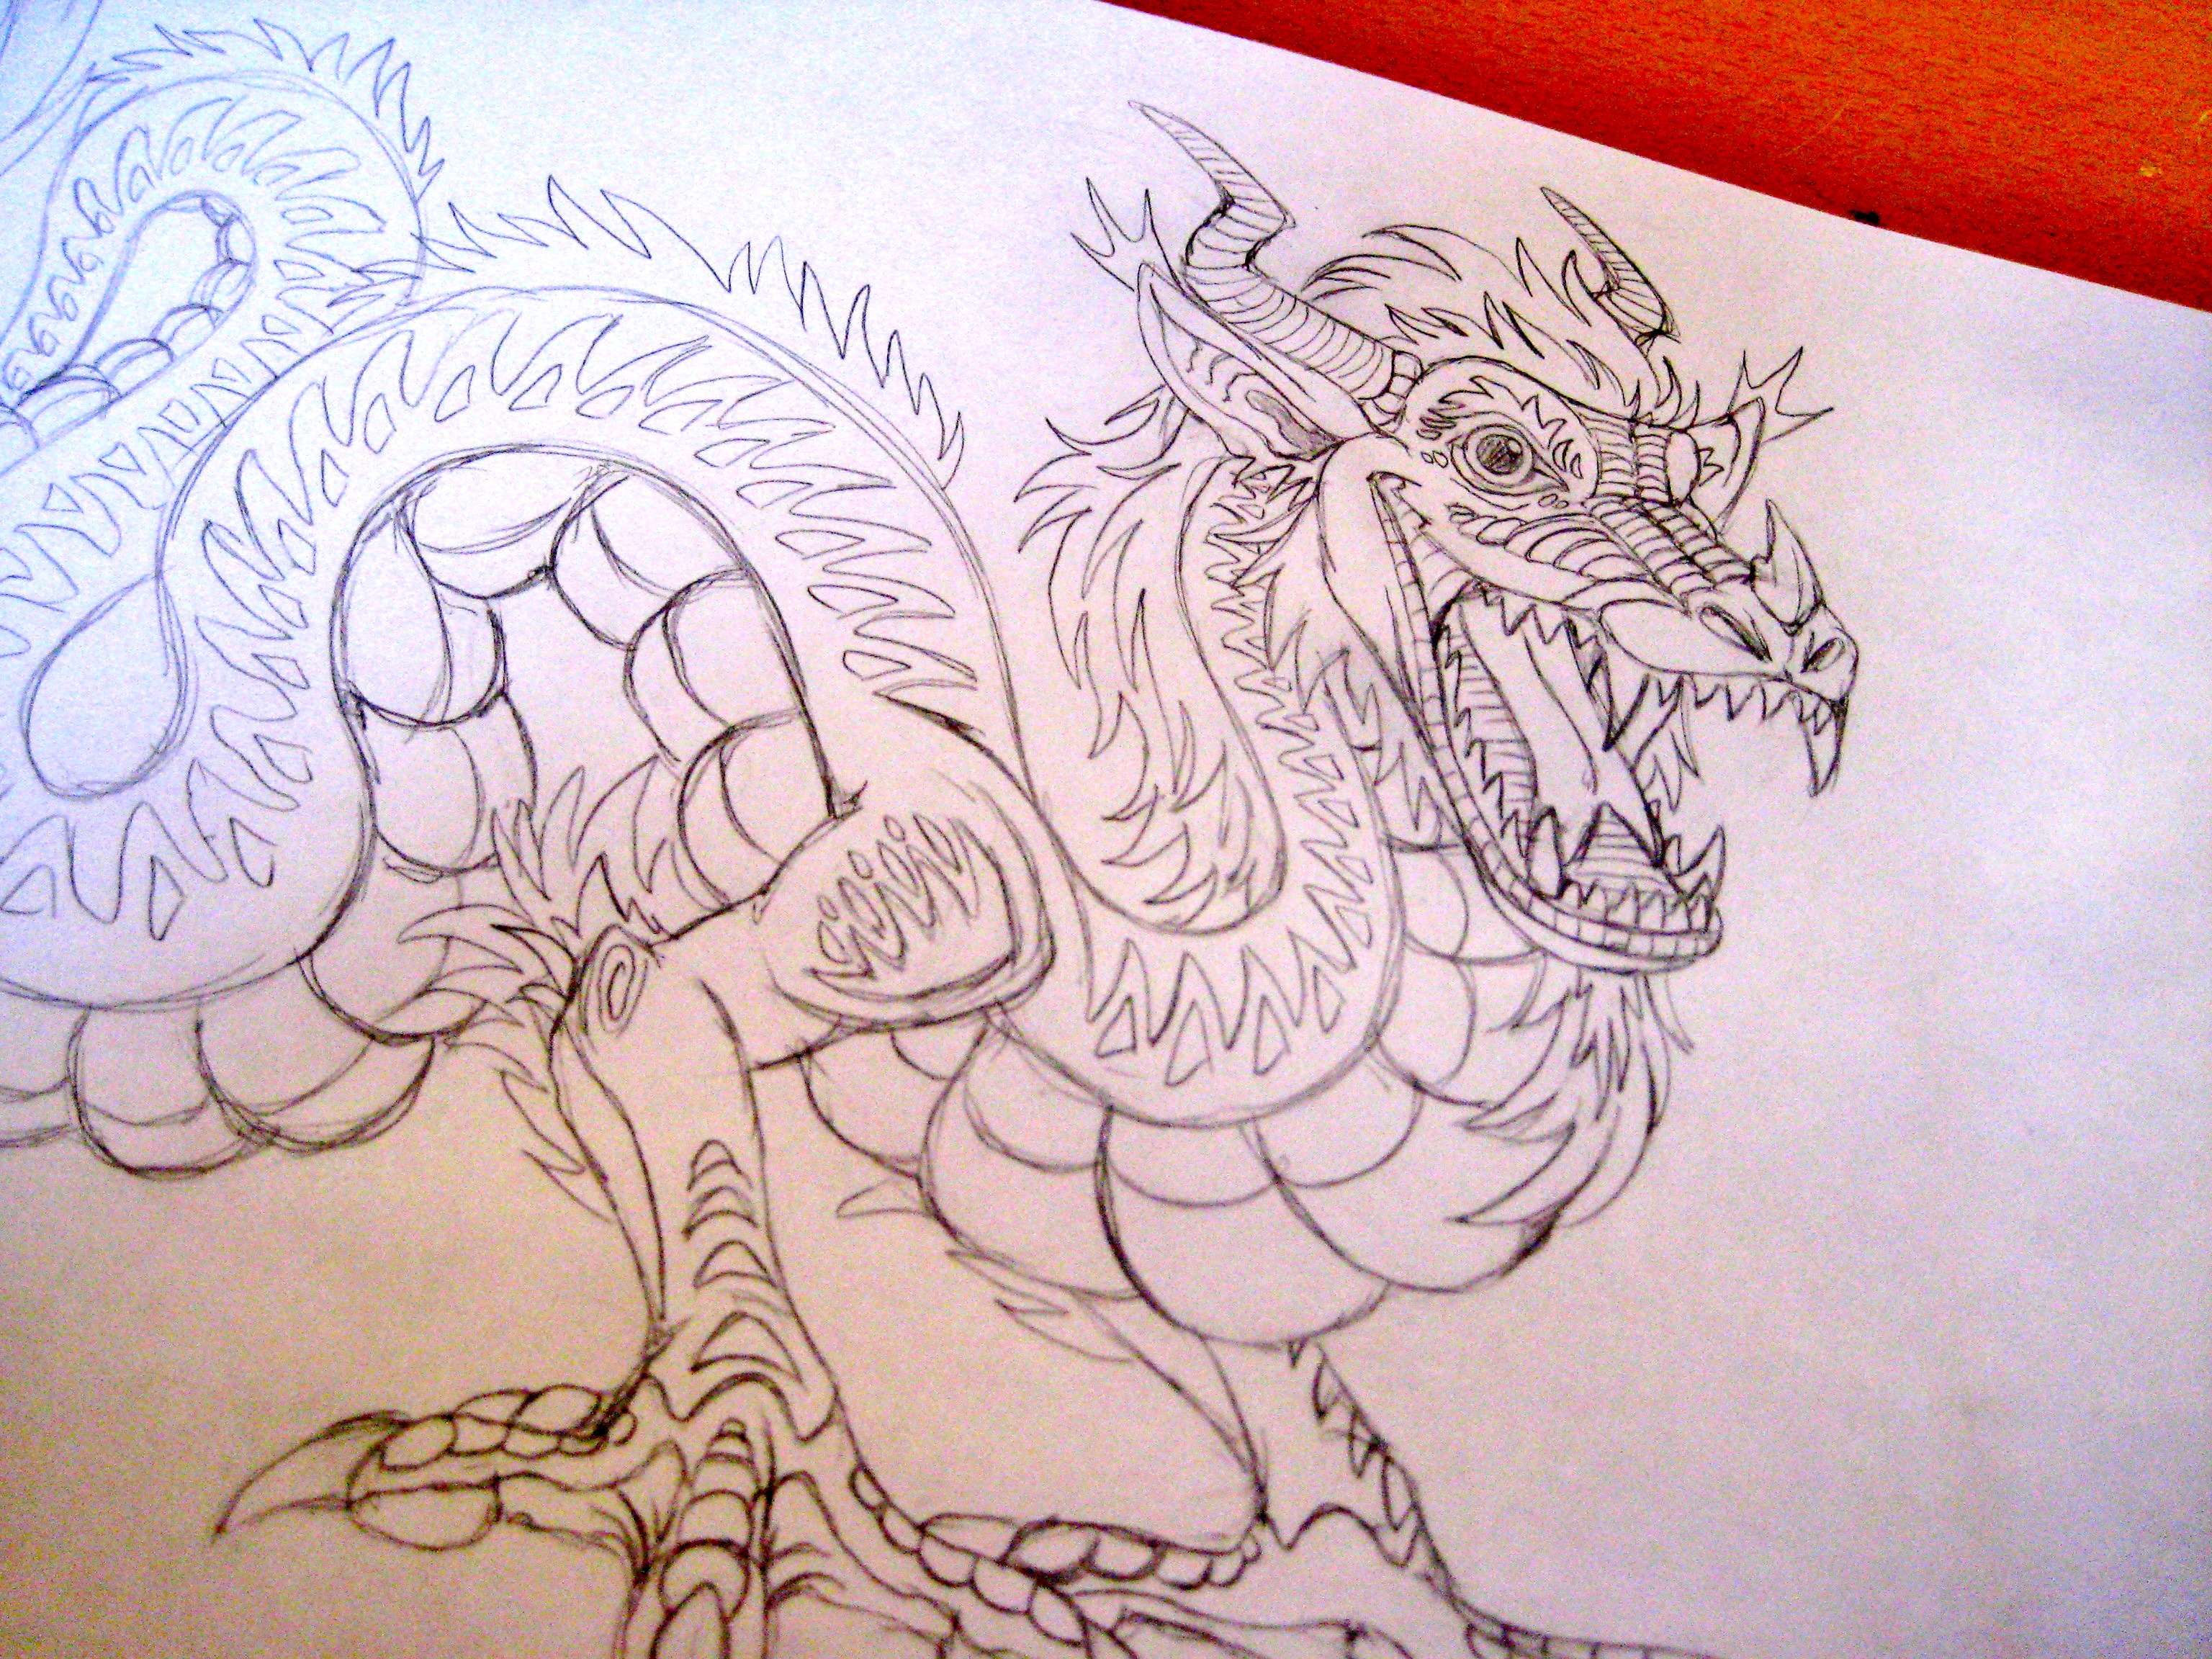 3072x2304 Stage 1 Chinese dragon, pencil sketch Sketches Pinterest